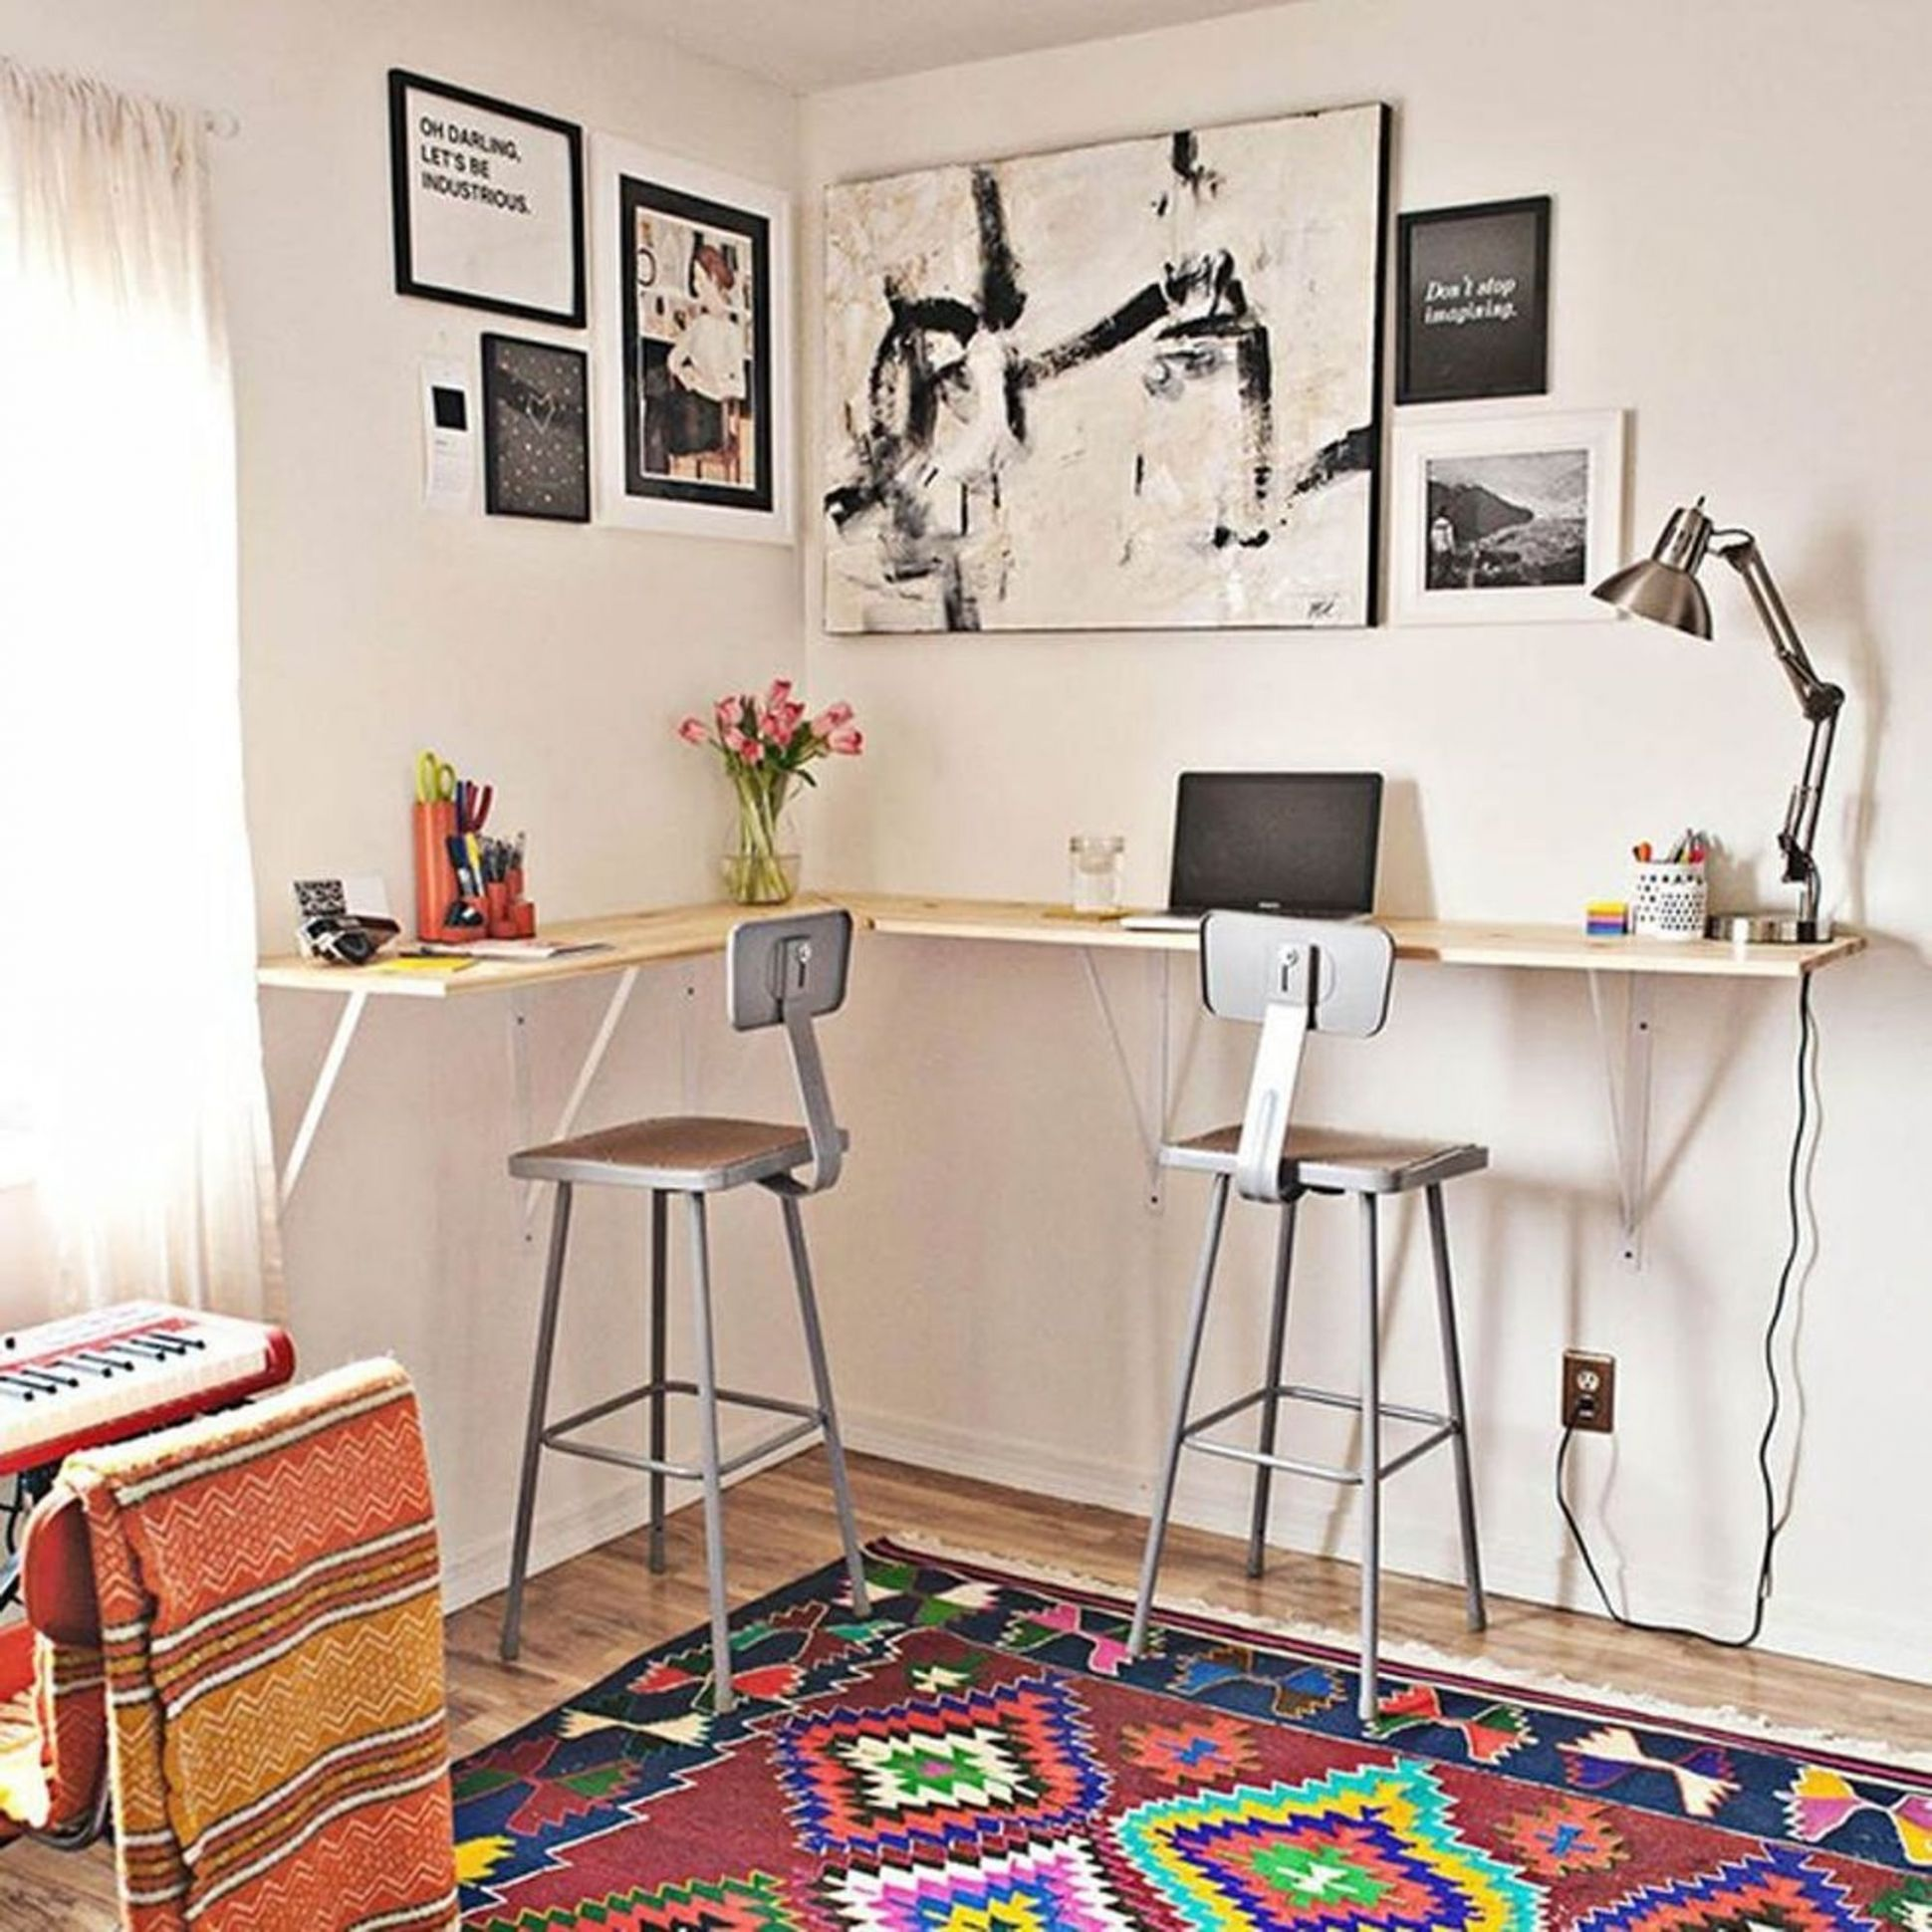 11 Space-Saving Wall-Mounted Desks to Buy or DIY - Brit + Co - home office ideas with standing desk